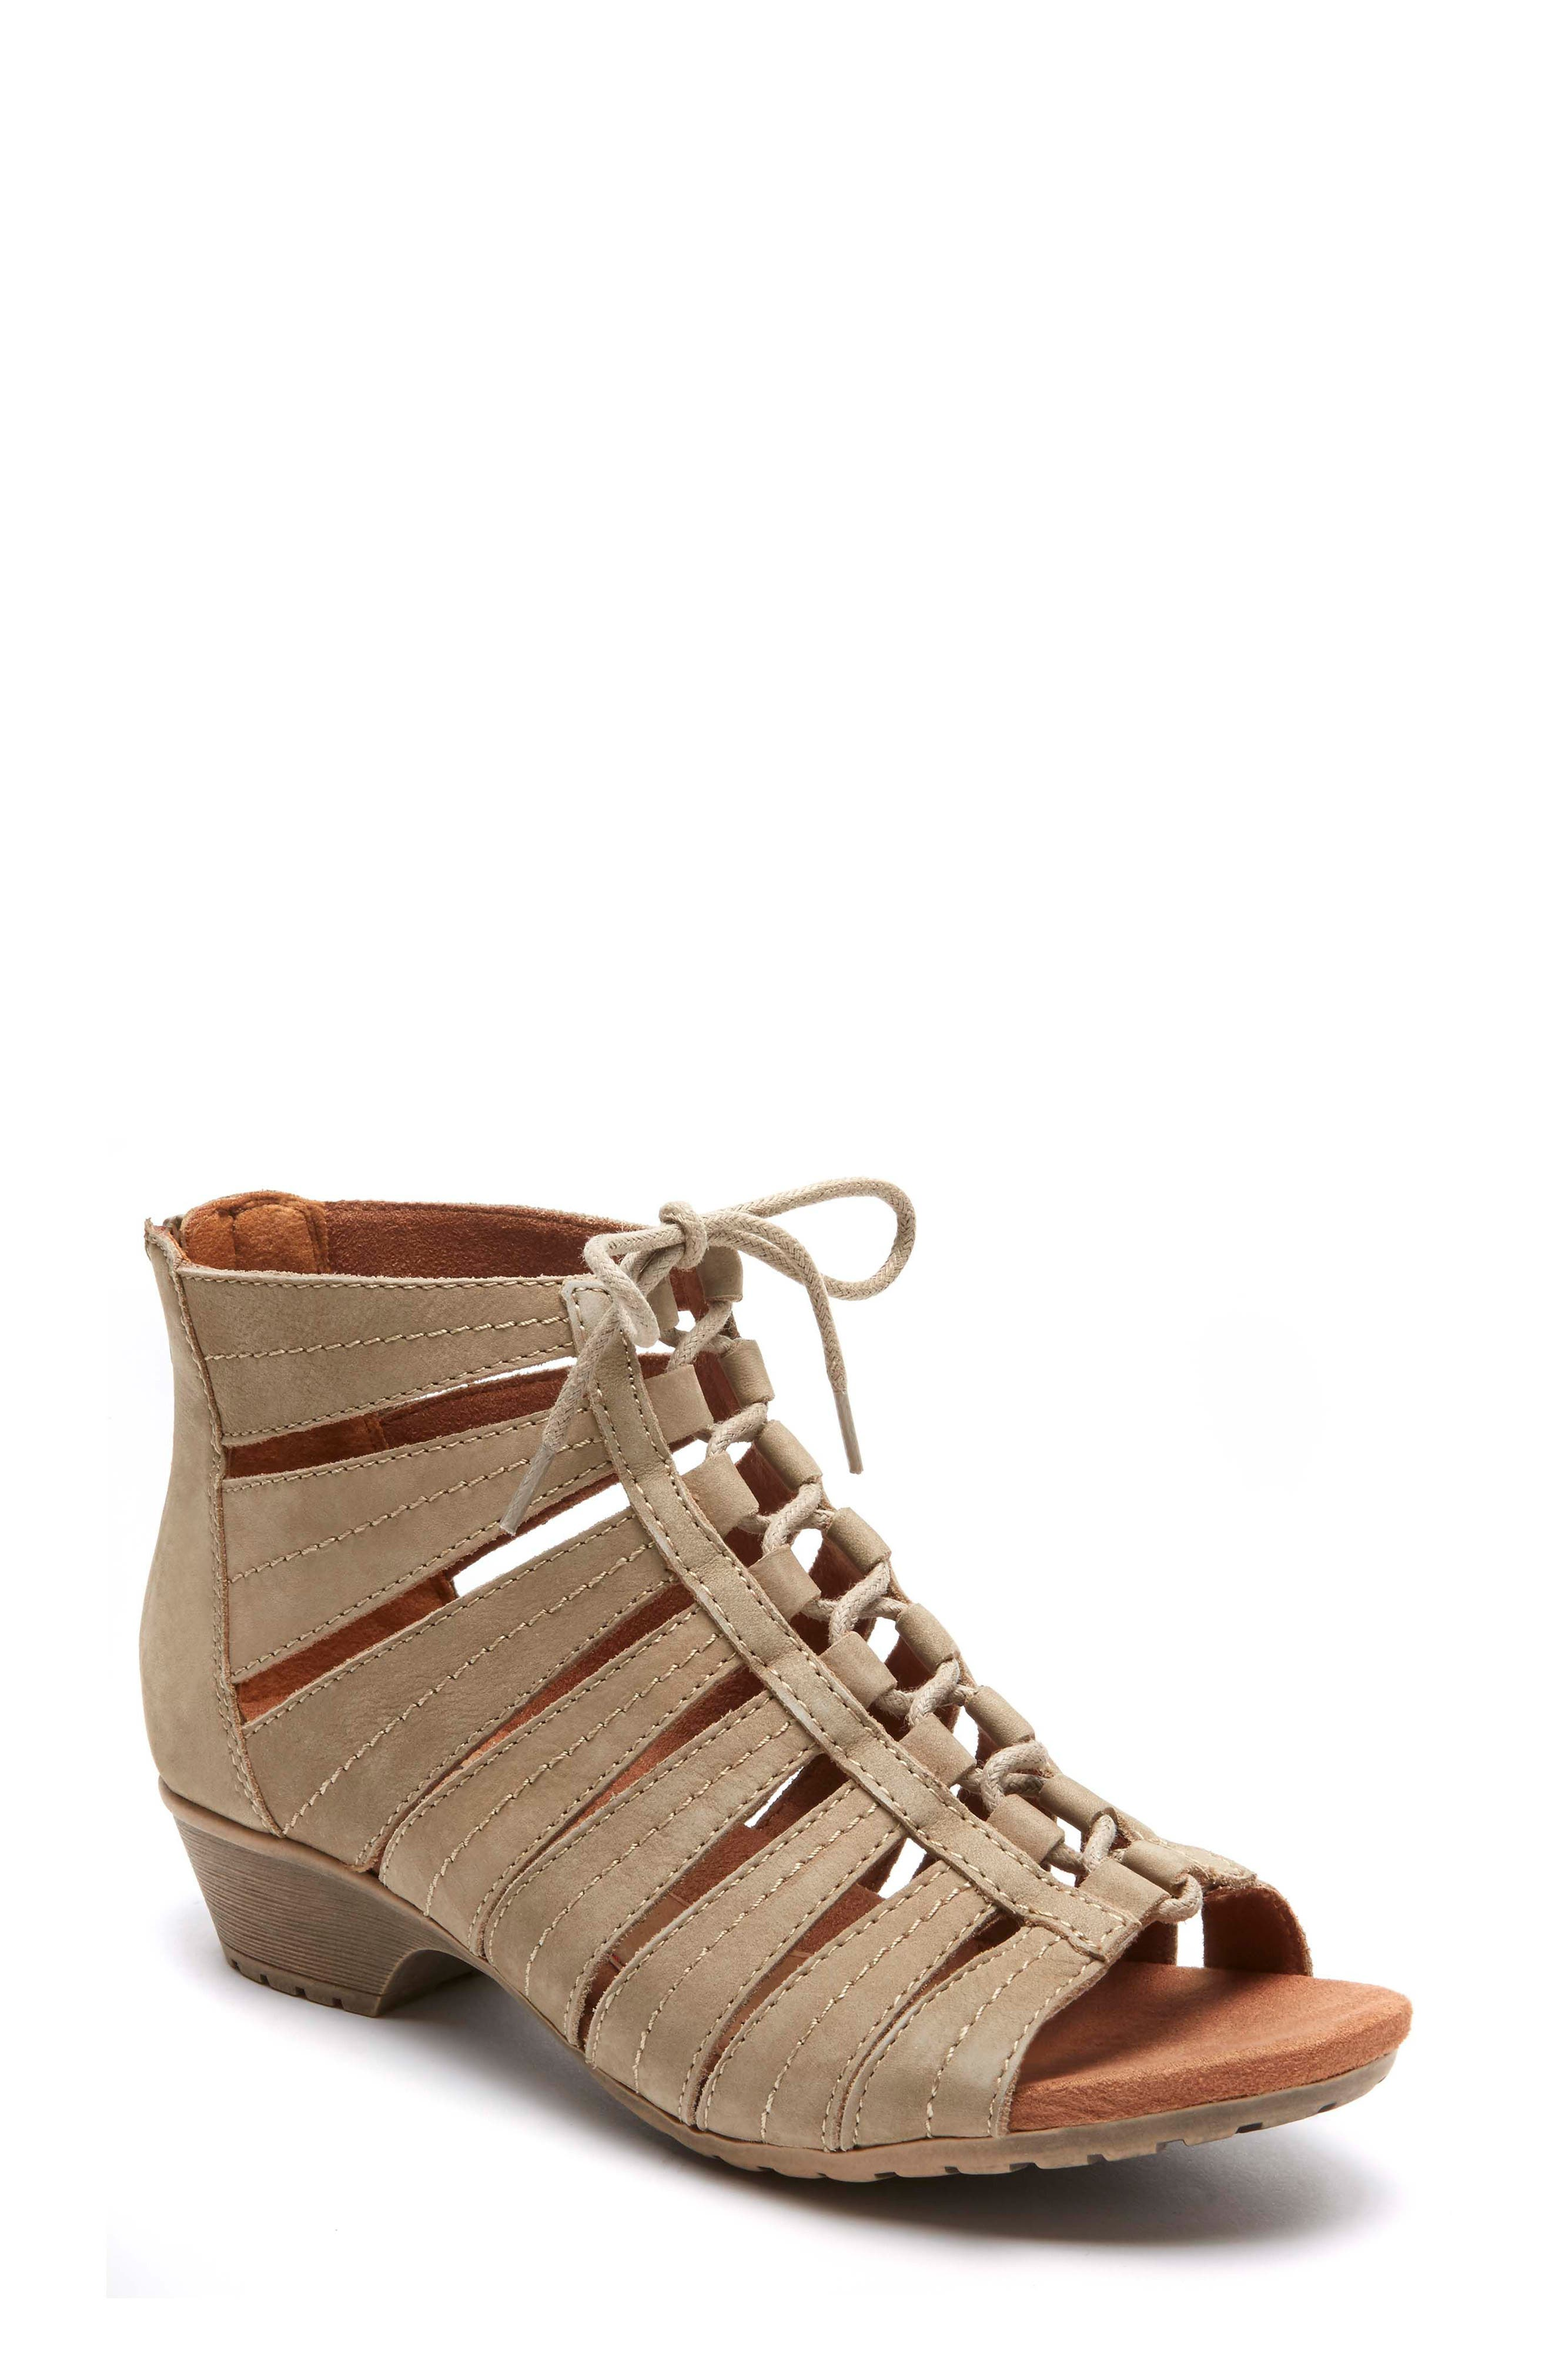 'Gabby' Lace-Up Sandal,                             Main thumbnail 1, color,